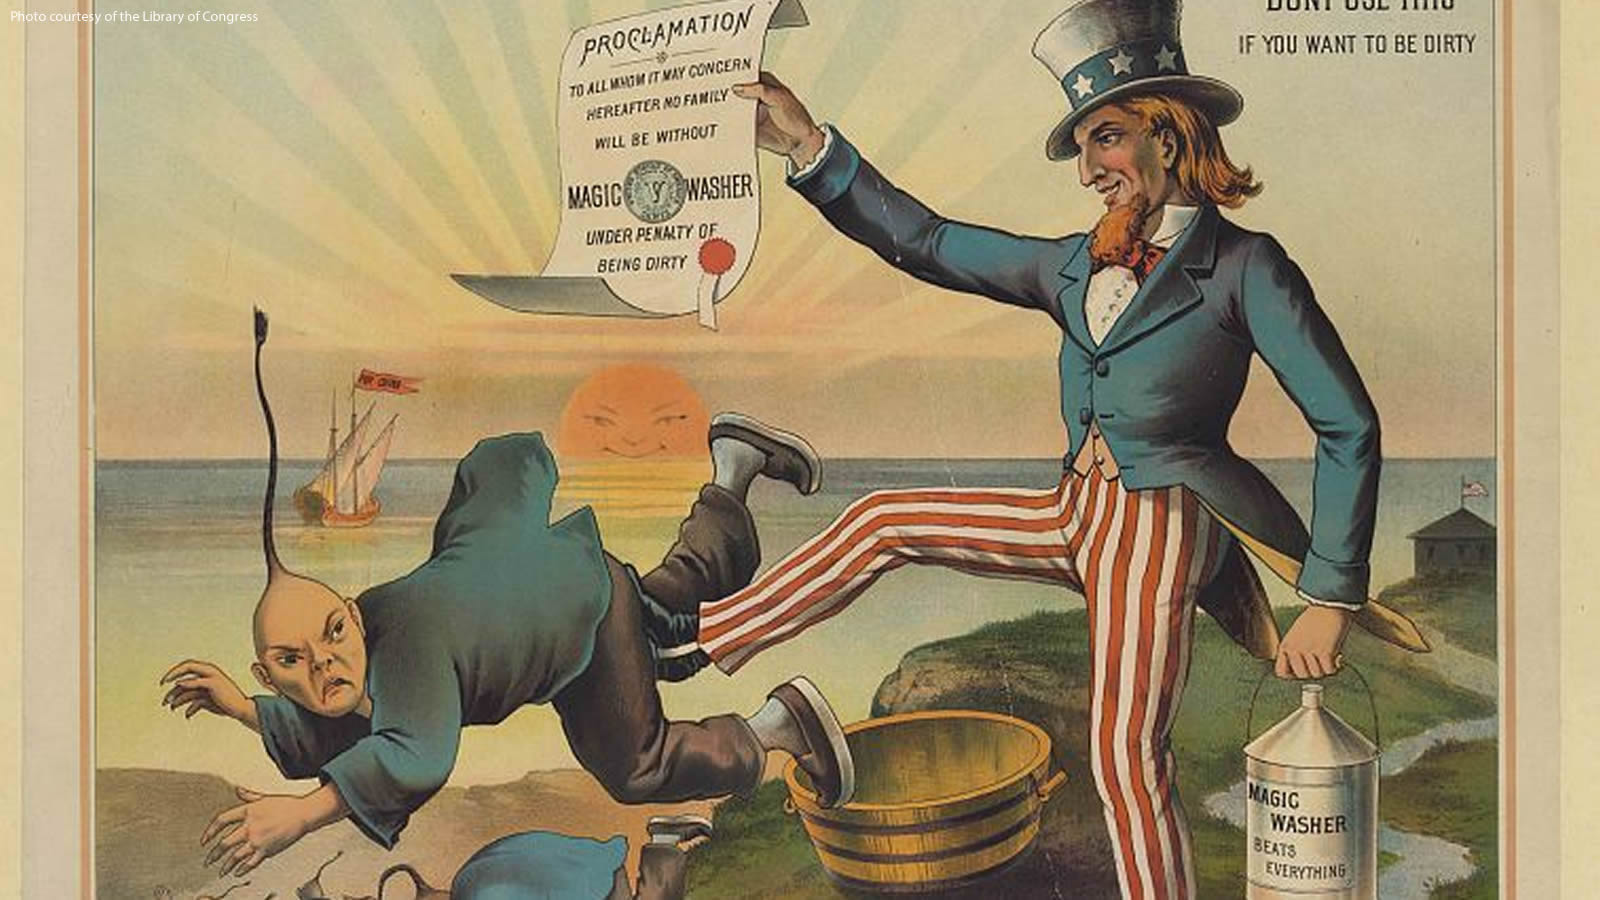 Uncle Sam kicking a Chinese man out of the United States